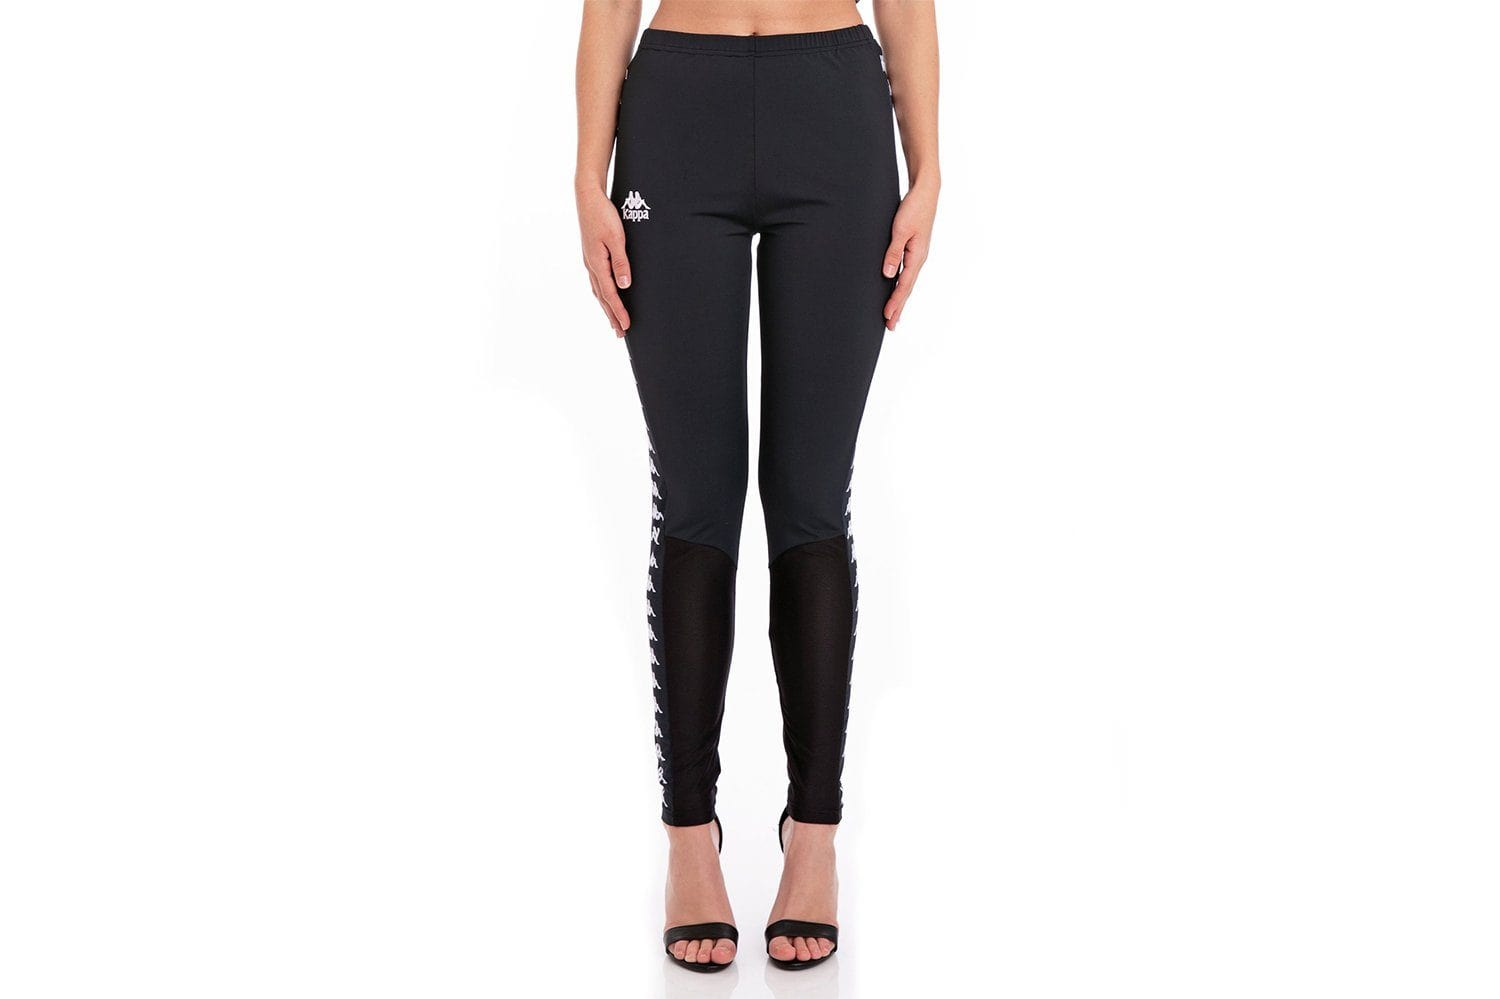 222 BANDA SPORTS TROUSERS - 304I750 WOMENS SOFTGOODS KAPPA